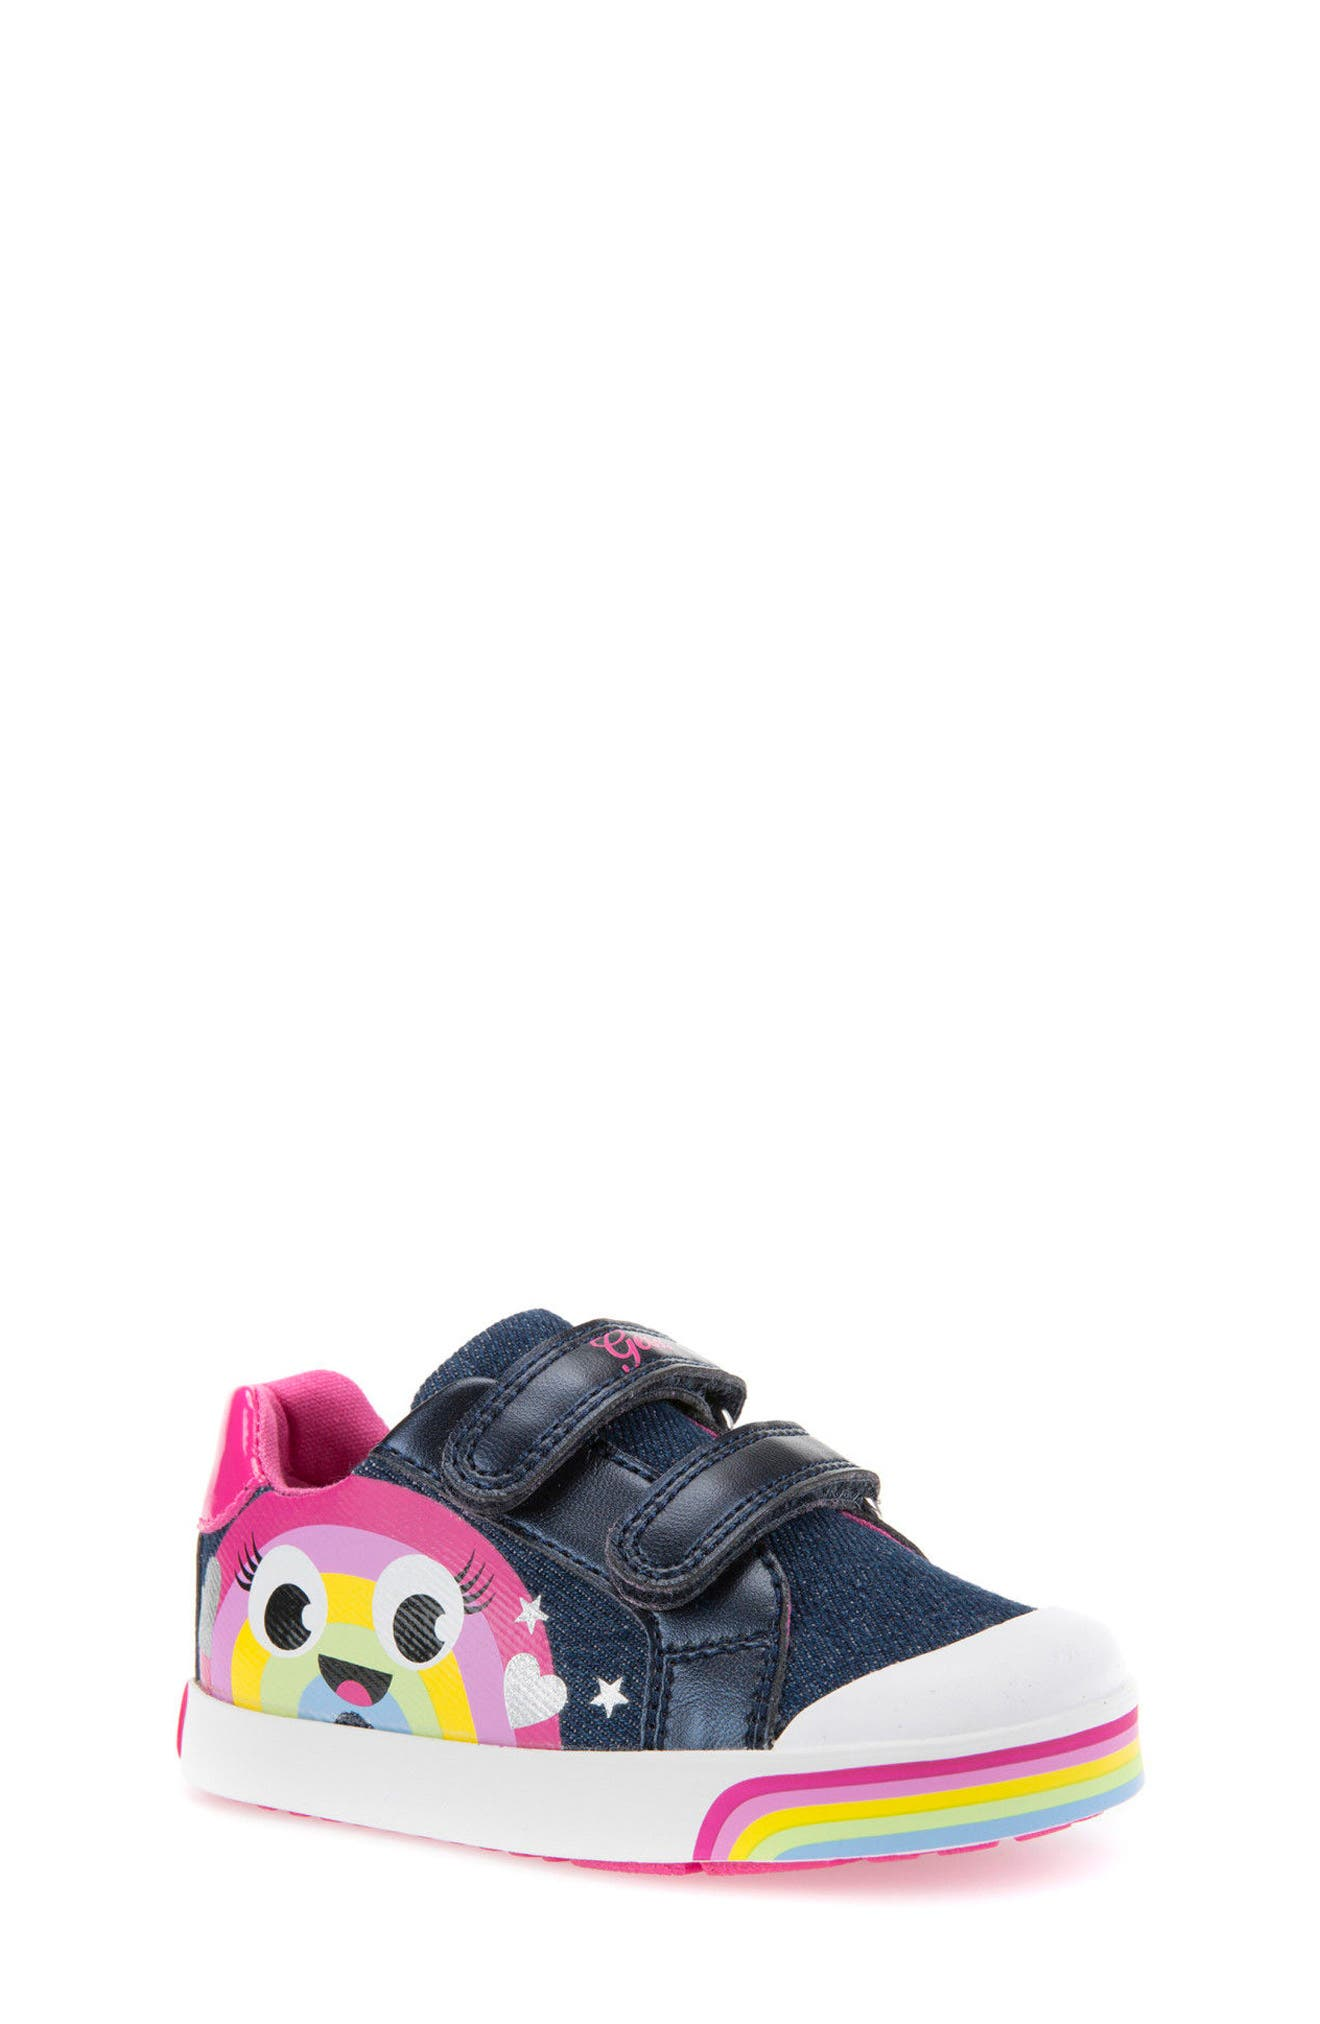 Kilwi Low Top Sneaker,                             Main thumbnail 1, color,                             AVIO/ MULTICOLOR